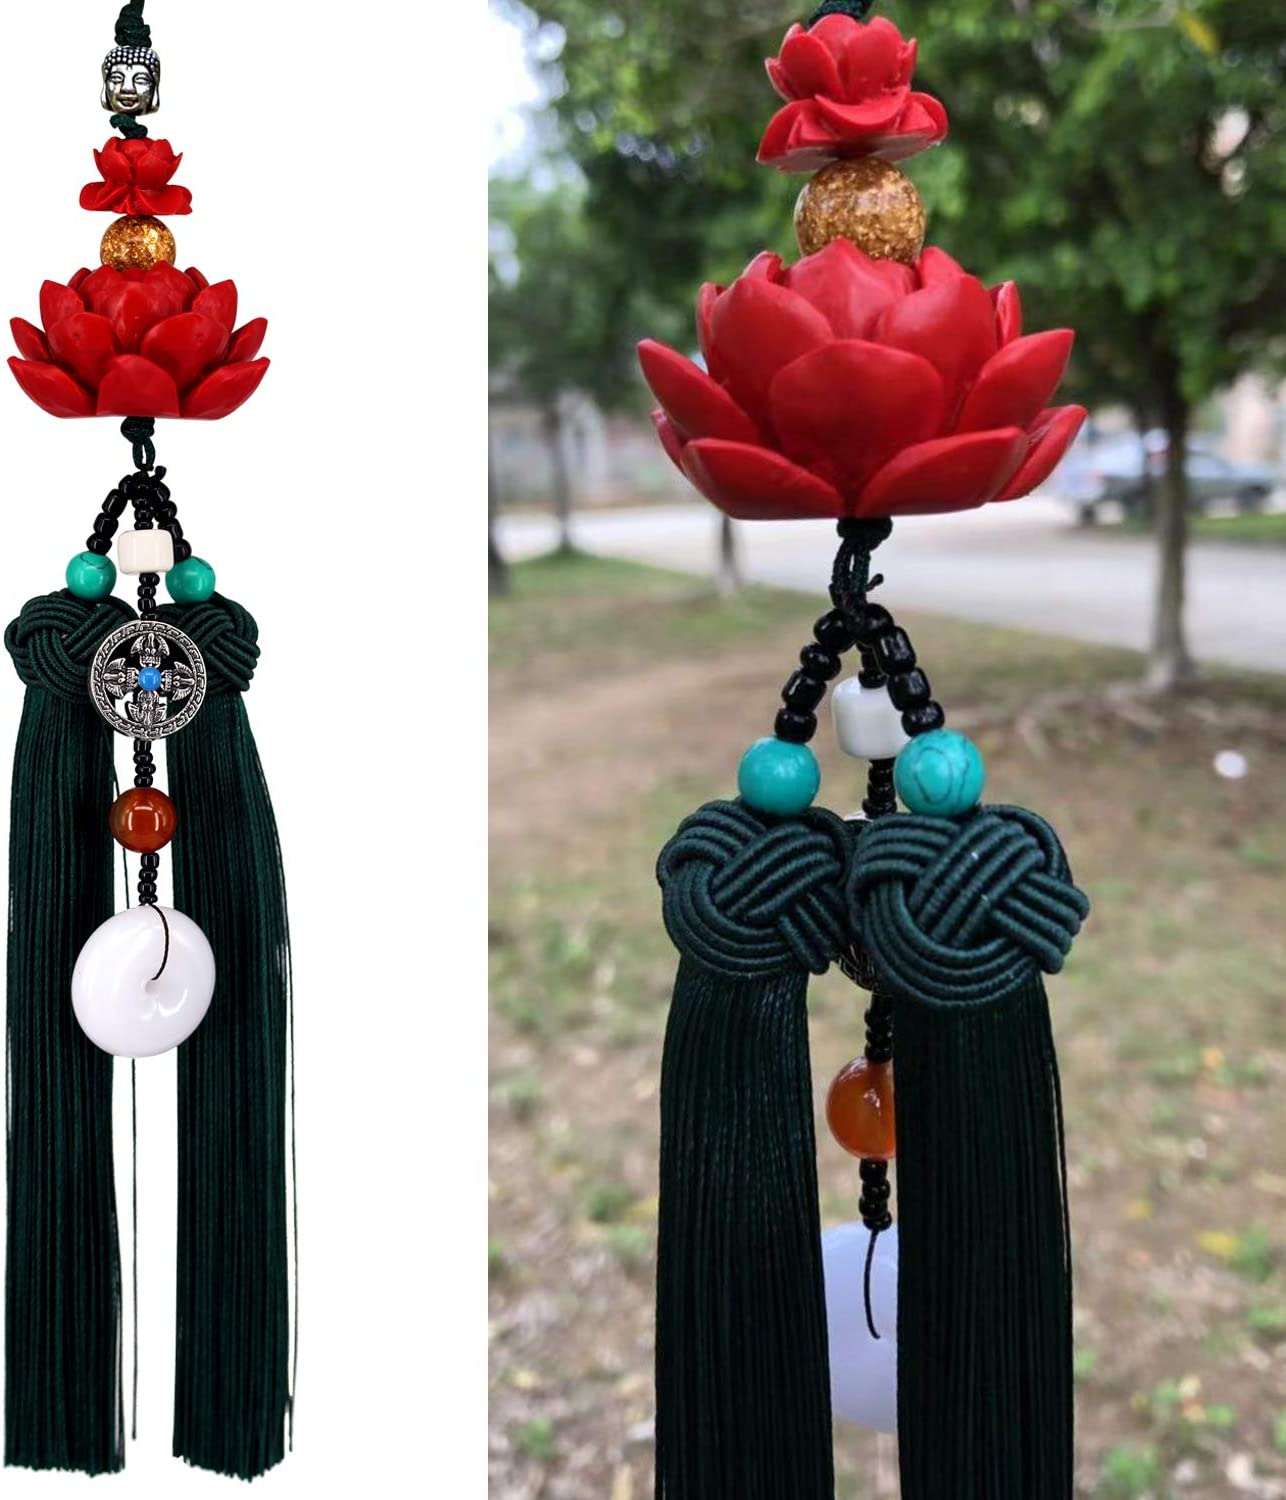 Lotus Double Tassel Car Hanging Decoration with Chinese Knot Car Charm Rear View Mirror Pendant Car Styling Accessories Auto Decoration Gift